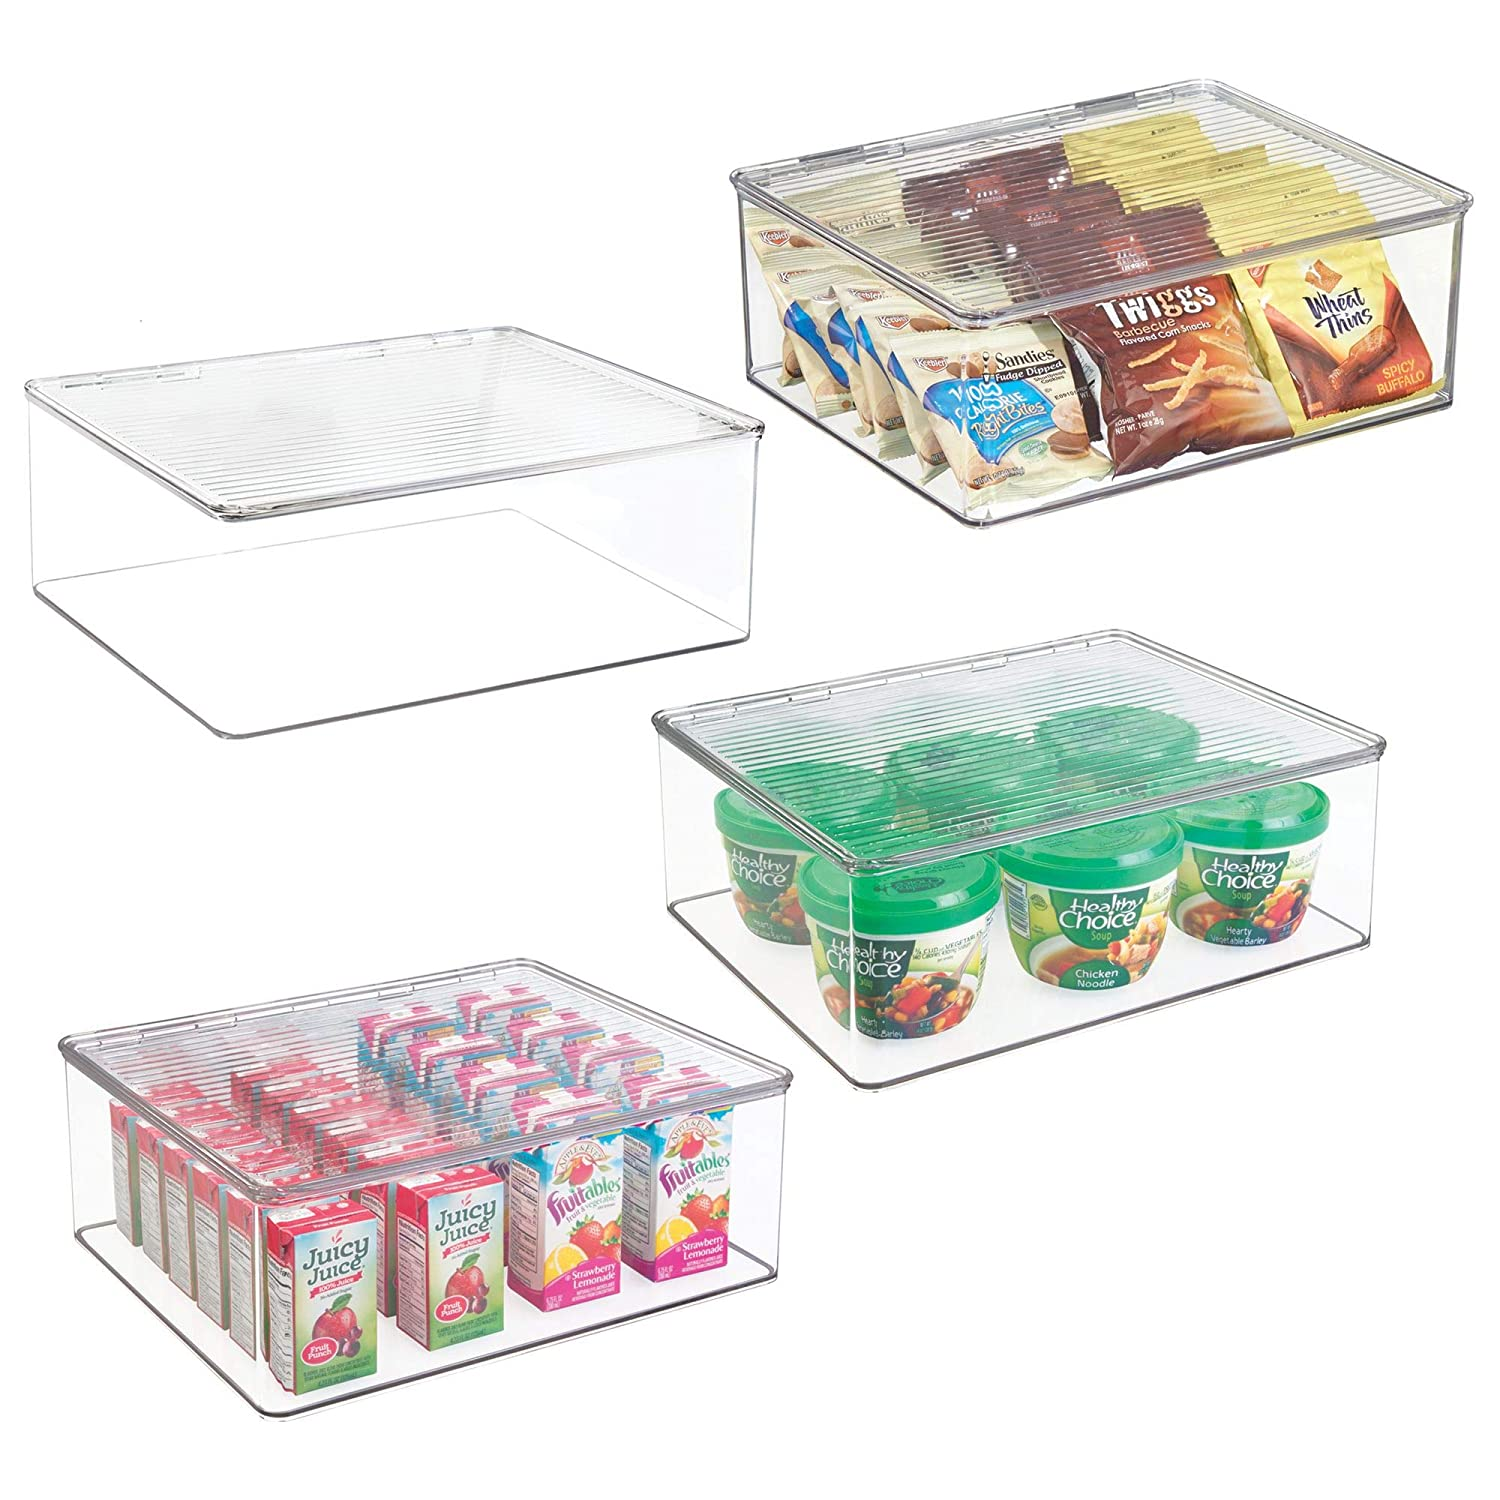 mDesign Plastic Stackable Kitchen Pantry Cabinet/Refrigerator Food Storage Container Bin Box with Lid - Organizer and Holder for Packets, Snacks, Fruits, Produce, Pasta - BPA Free, 4 Pack - Clear